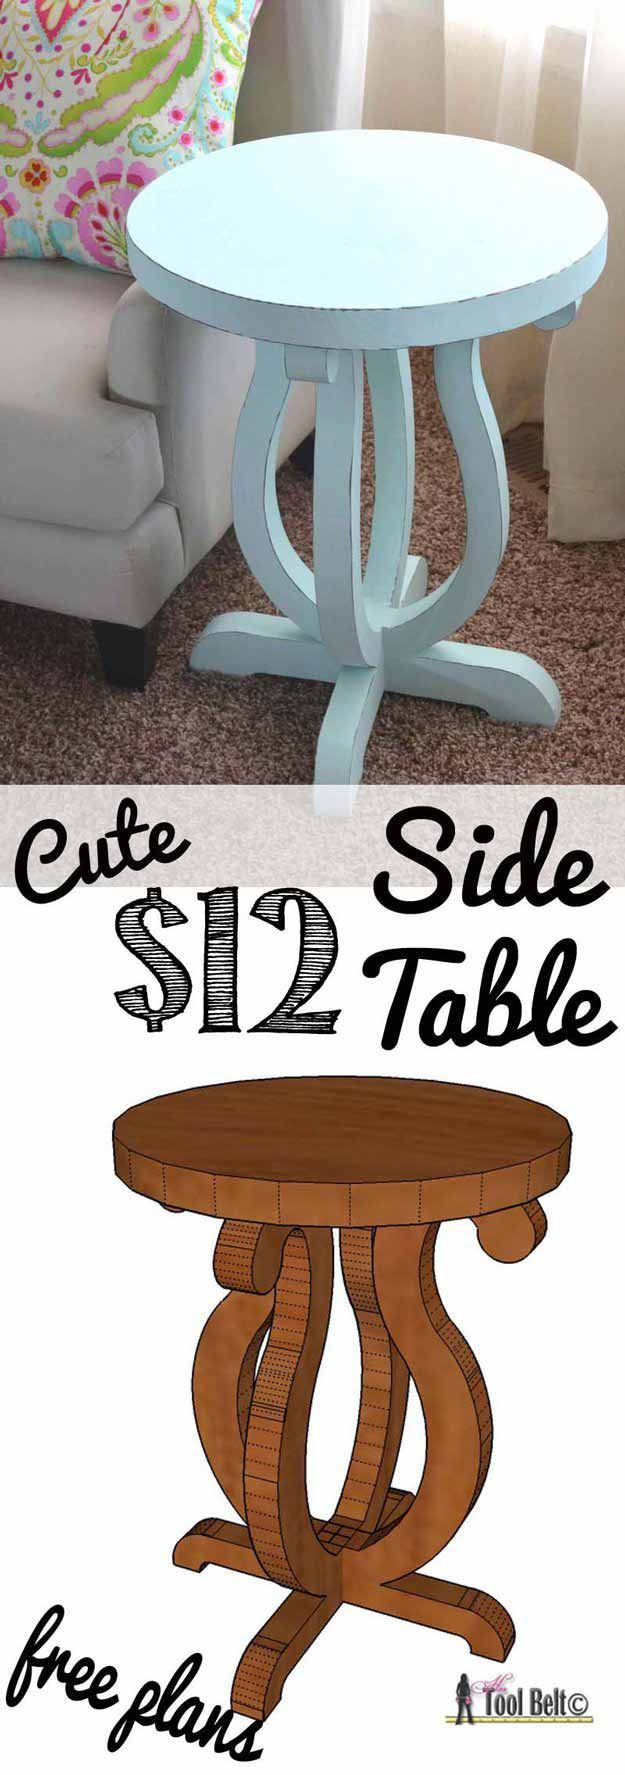 Cute Side Table | Easy Woodworking Projects